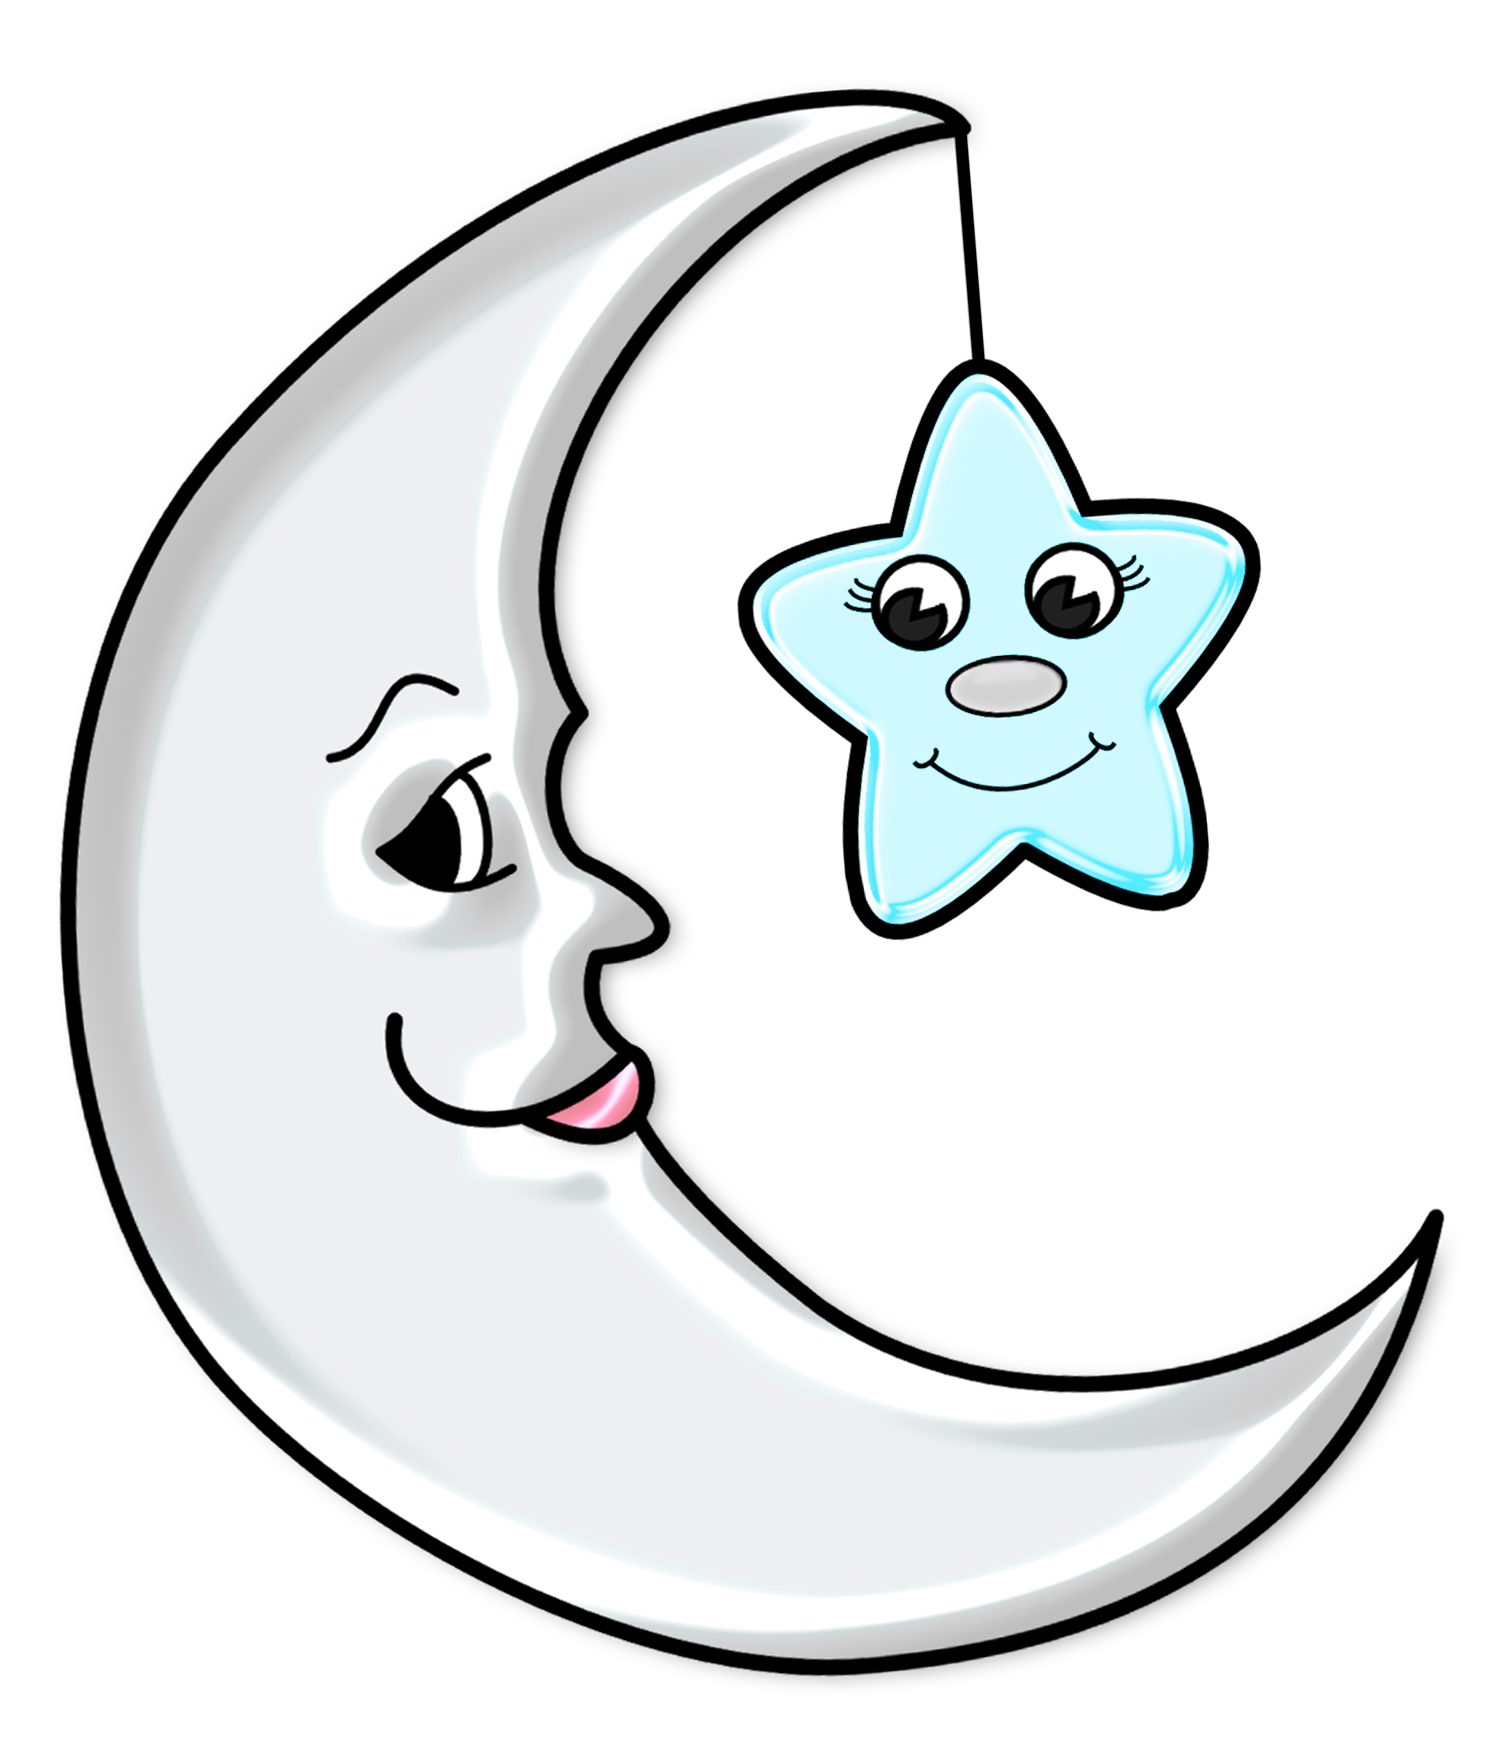 Free moon and star clipart png royalty free stock Sun Moon Stars Drawing at GetDrawings.com | Free for personal use ... png royalty free stock